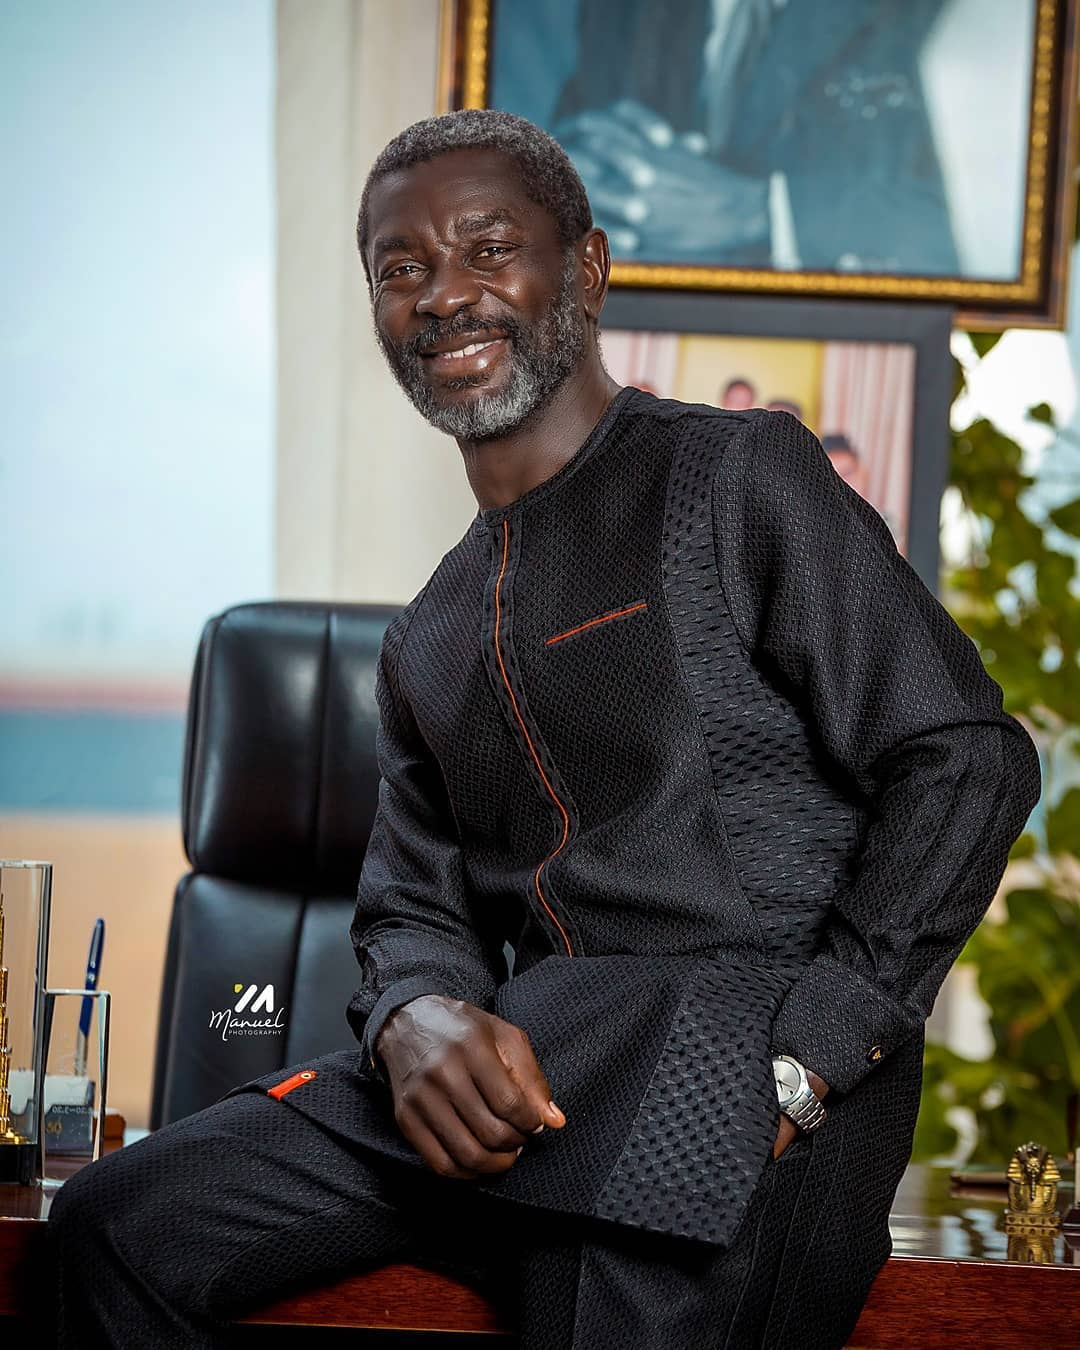 Prince Kofi Amoabeng Stuns Social Media In New Photos - Kuulpeeps - Ghana  Campus News and Lifestyle Site by Students